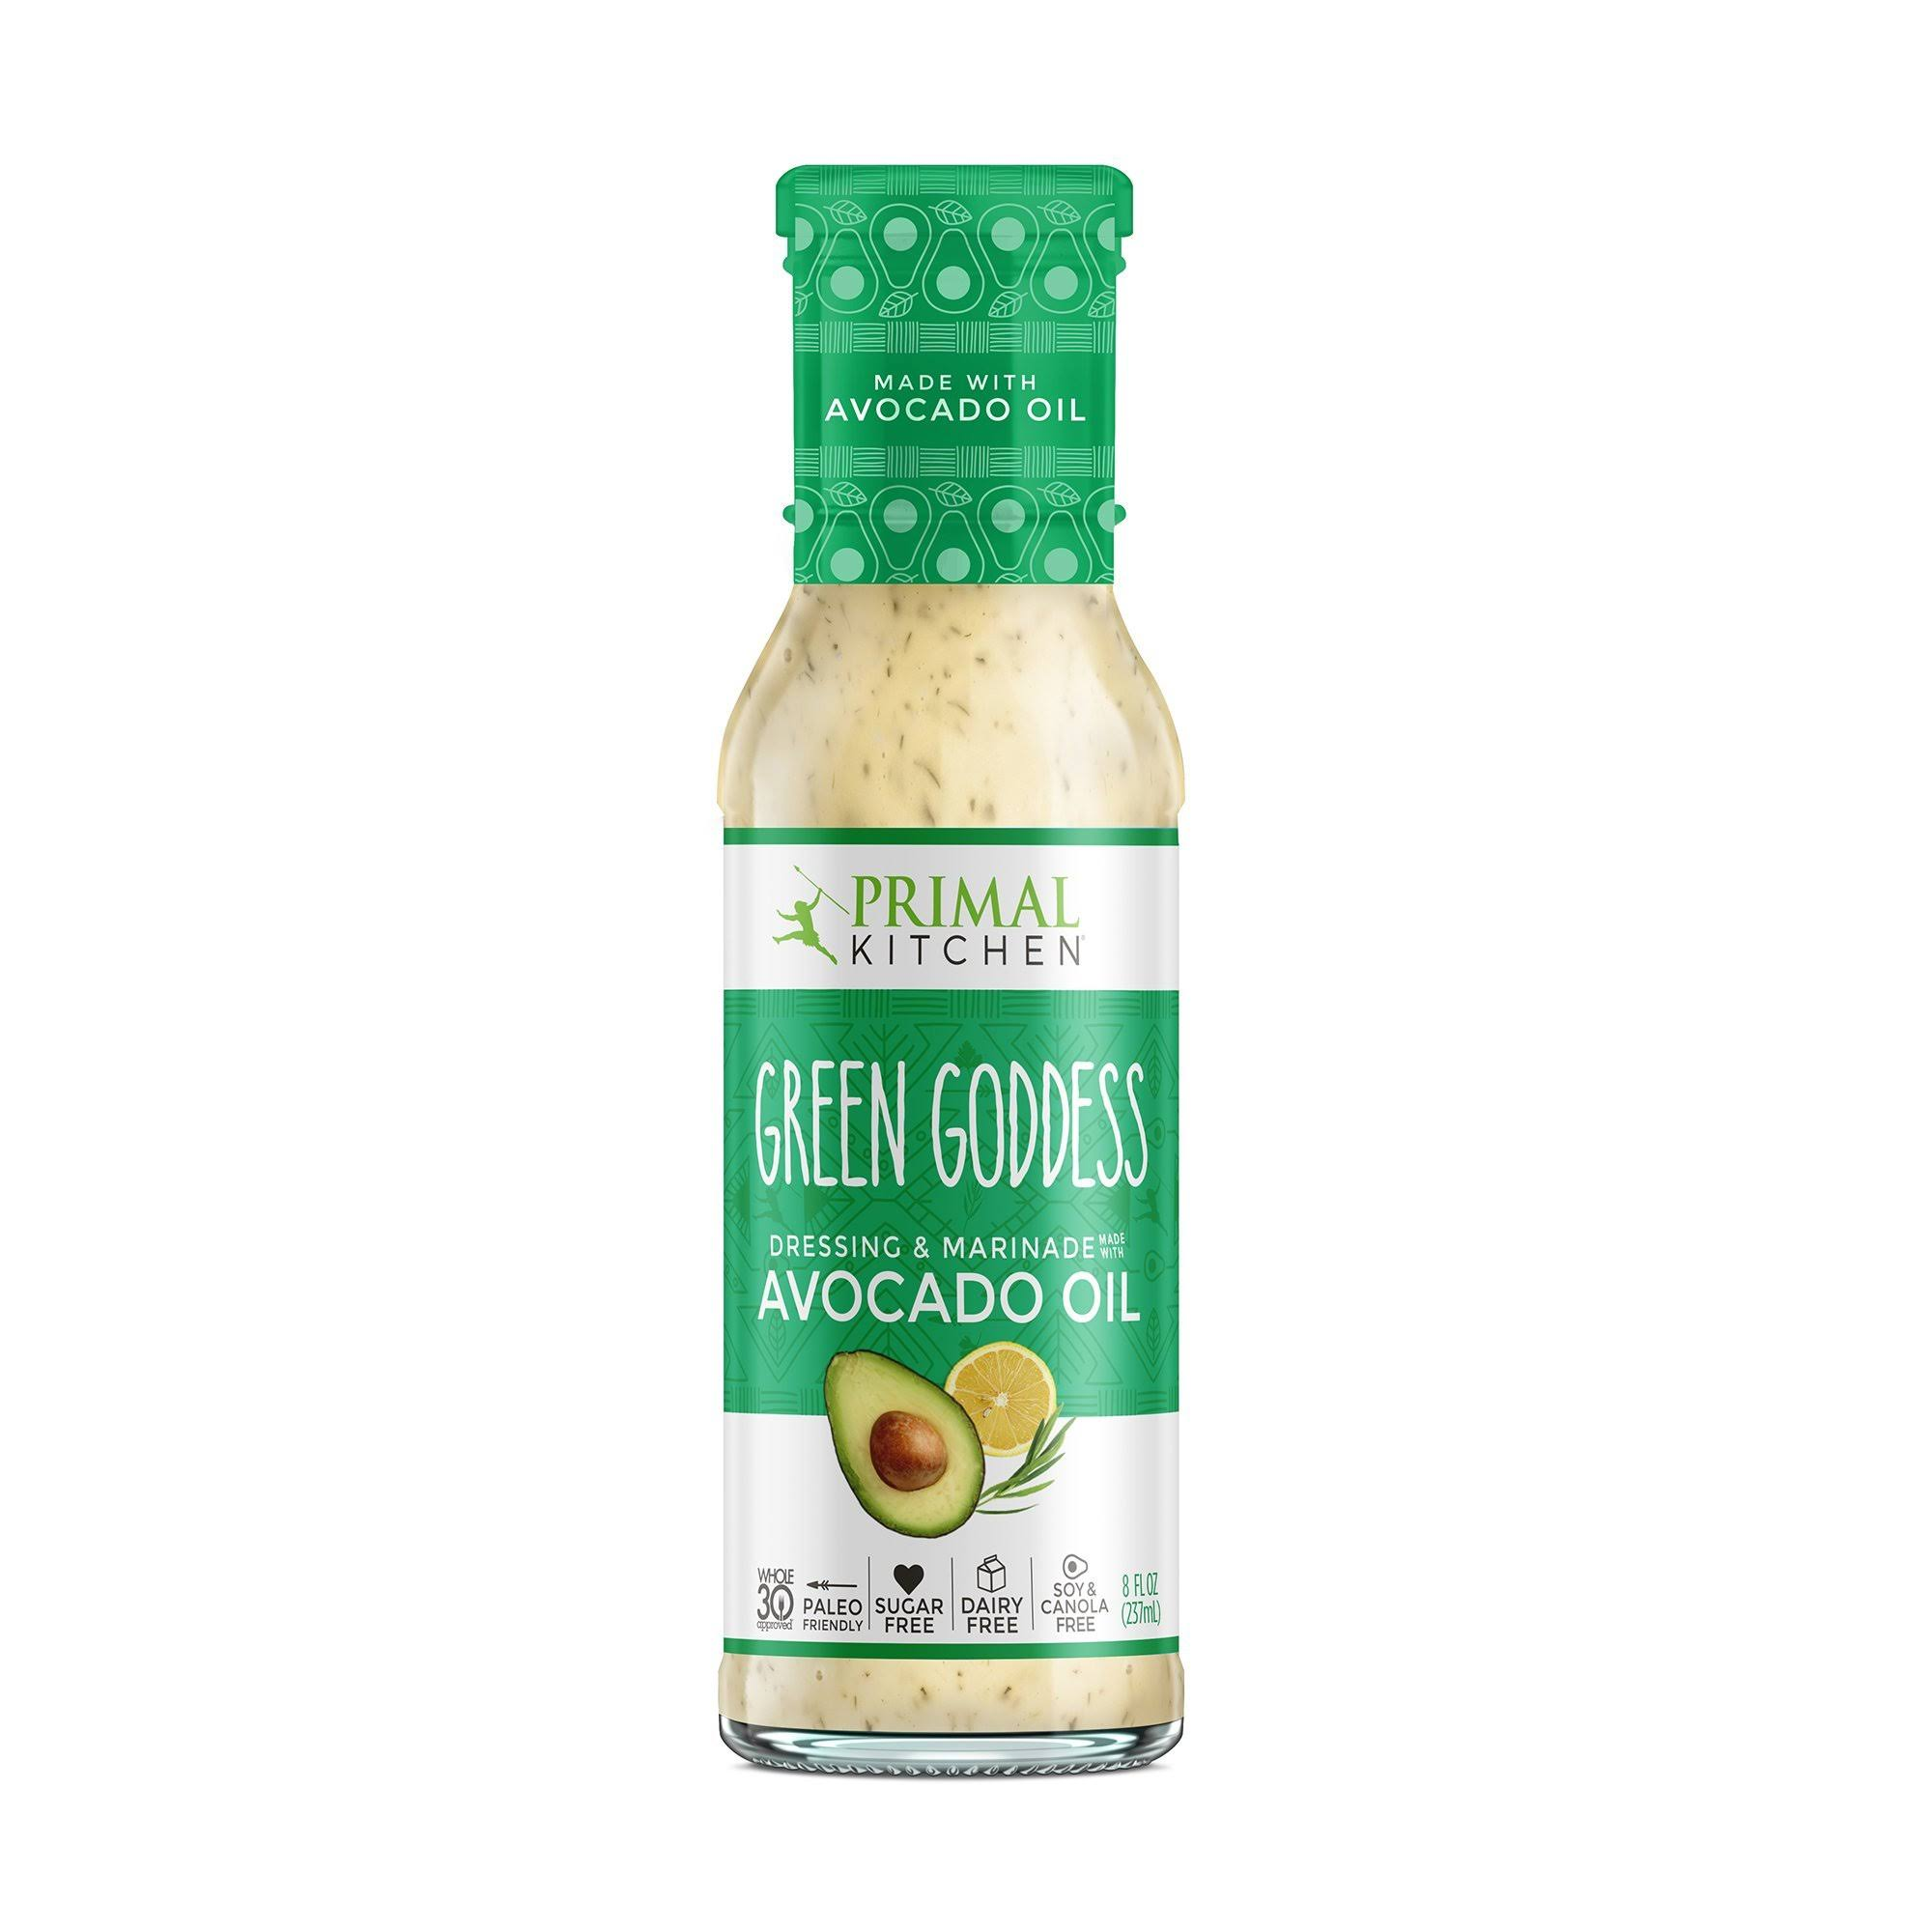 Primal Kitchen Green Goddess Dressing - Avocado Oil, 8oz